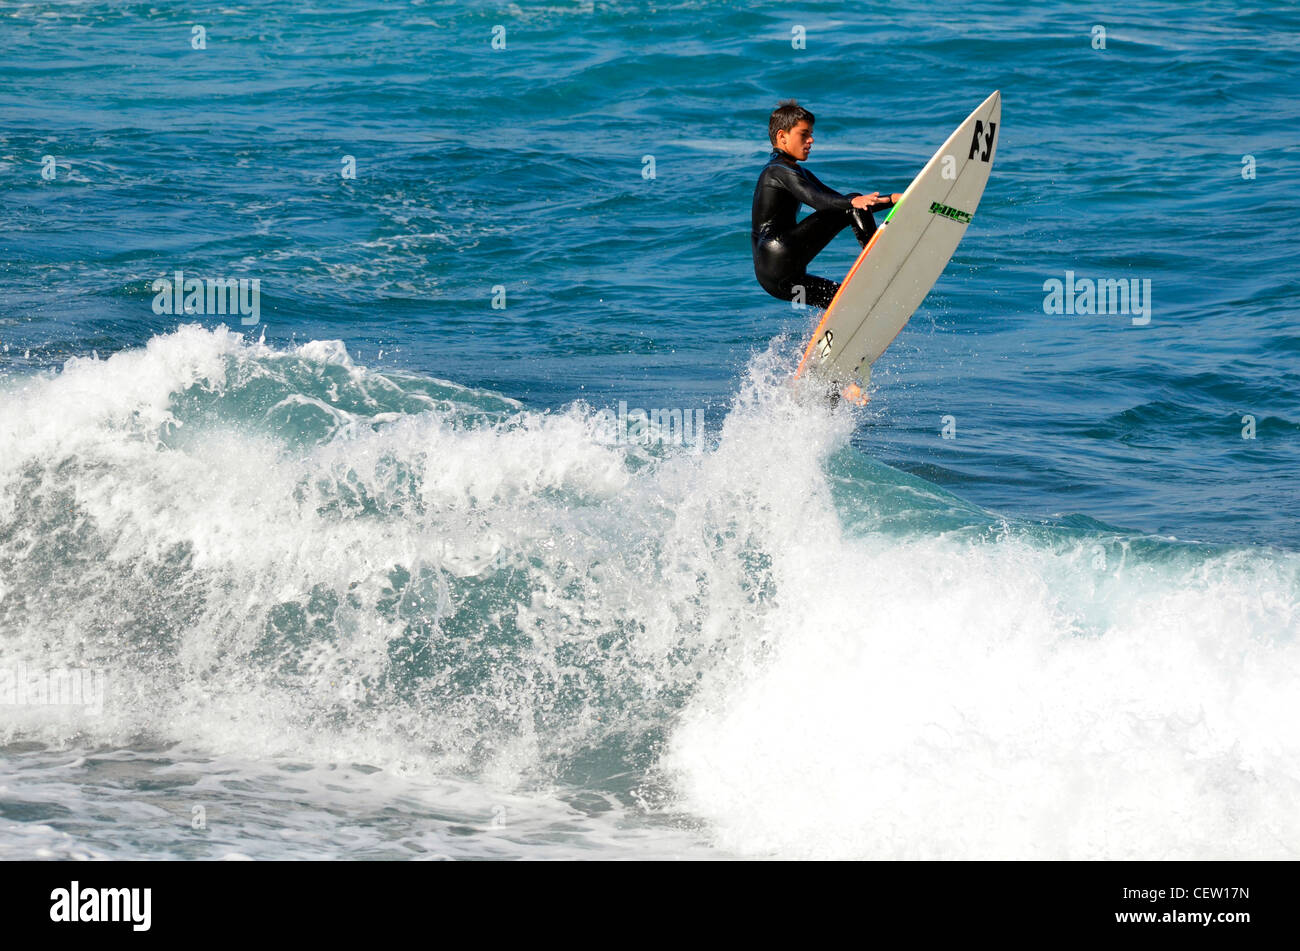 Ivan Gonzalez Dominguez (age 17) Spanish Surfing champion Photographed in Tenerife, Canary Islands, - Stock Image